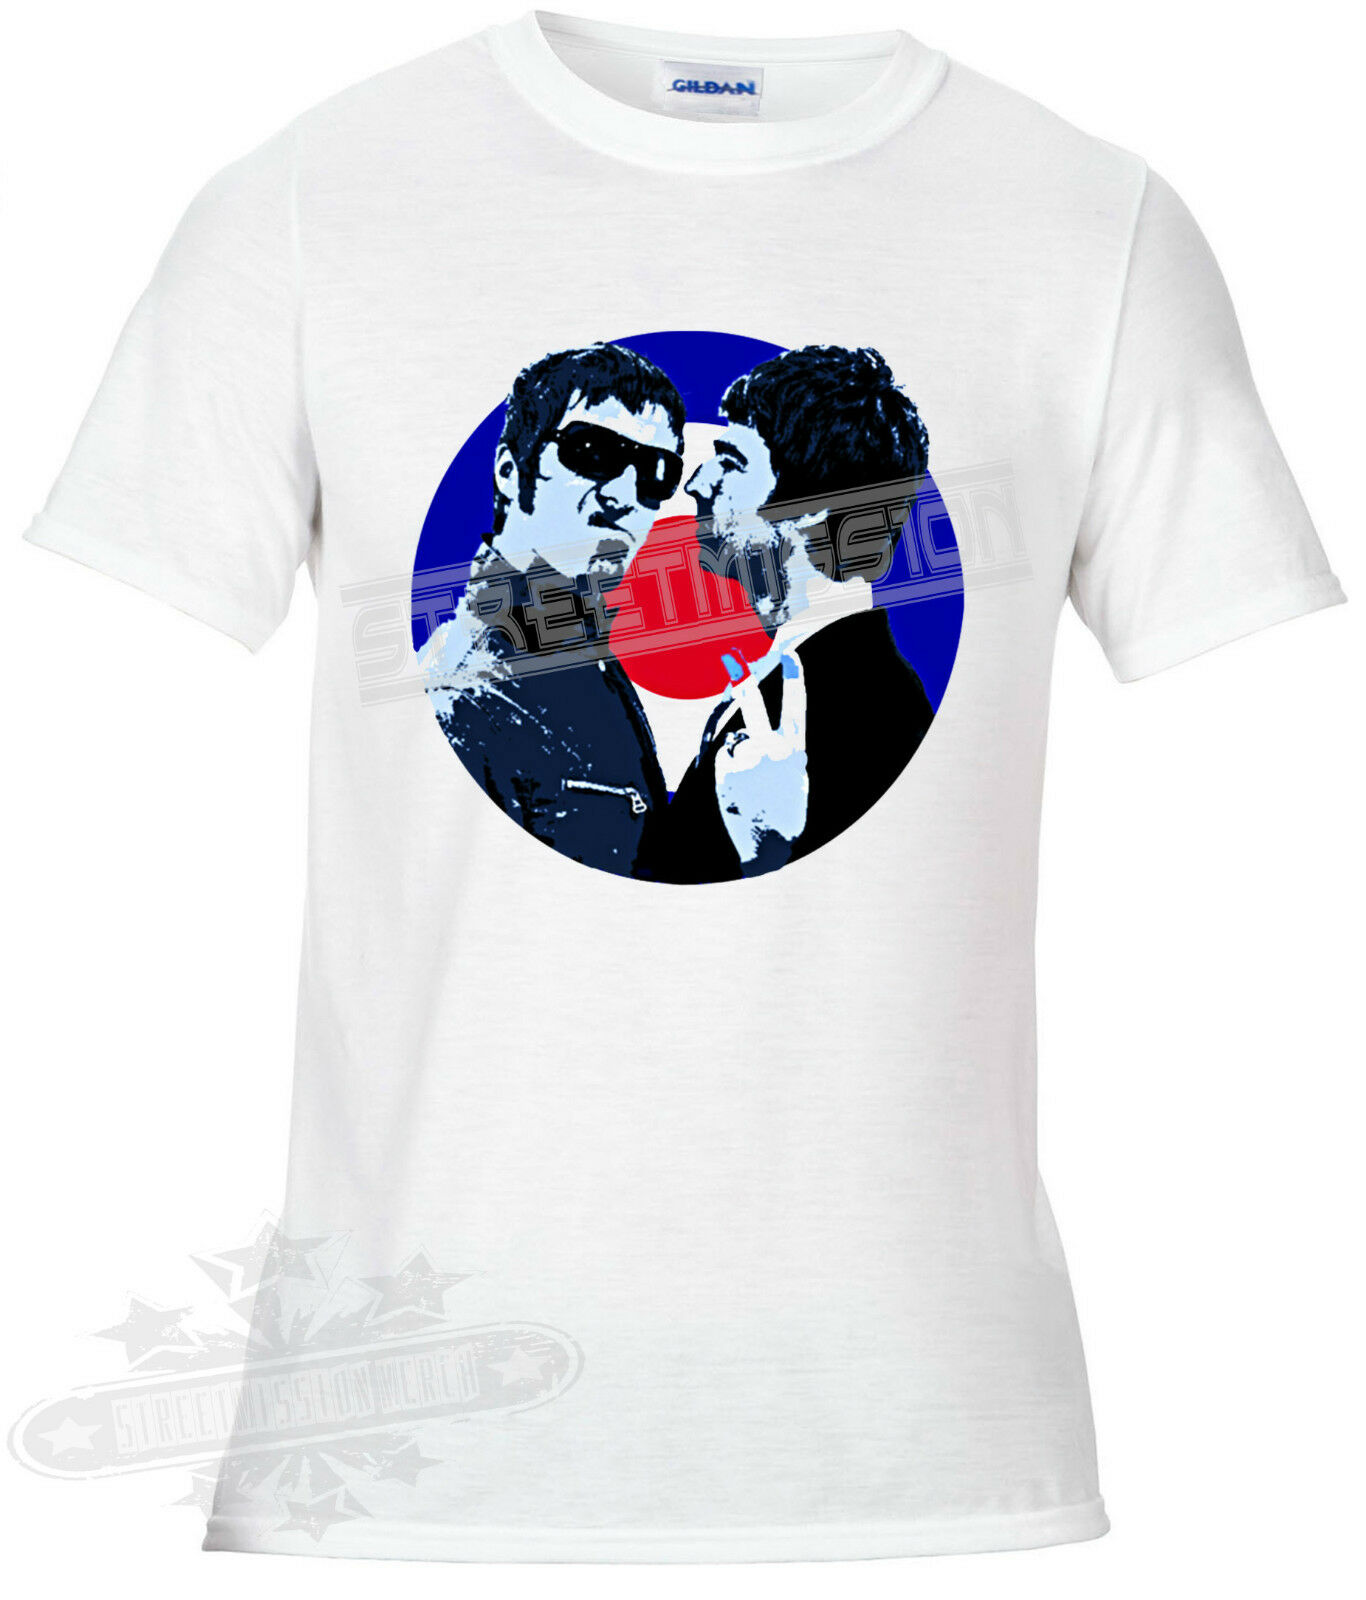 Liam Gallagher Face Oasis Indie Rock Music Womens T-Shirt